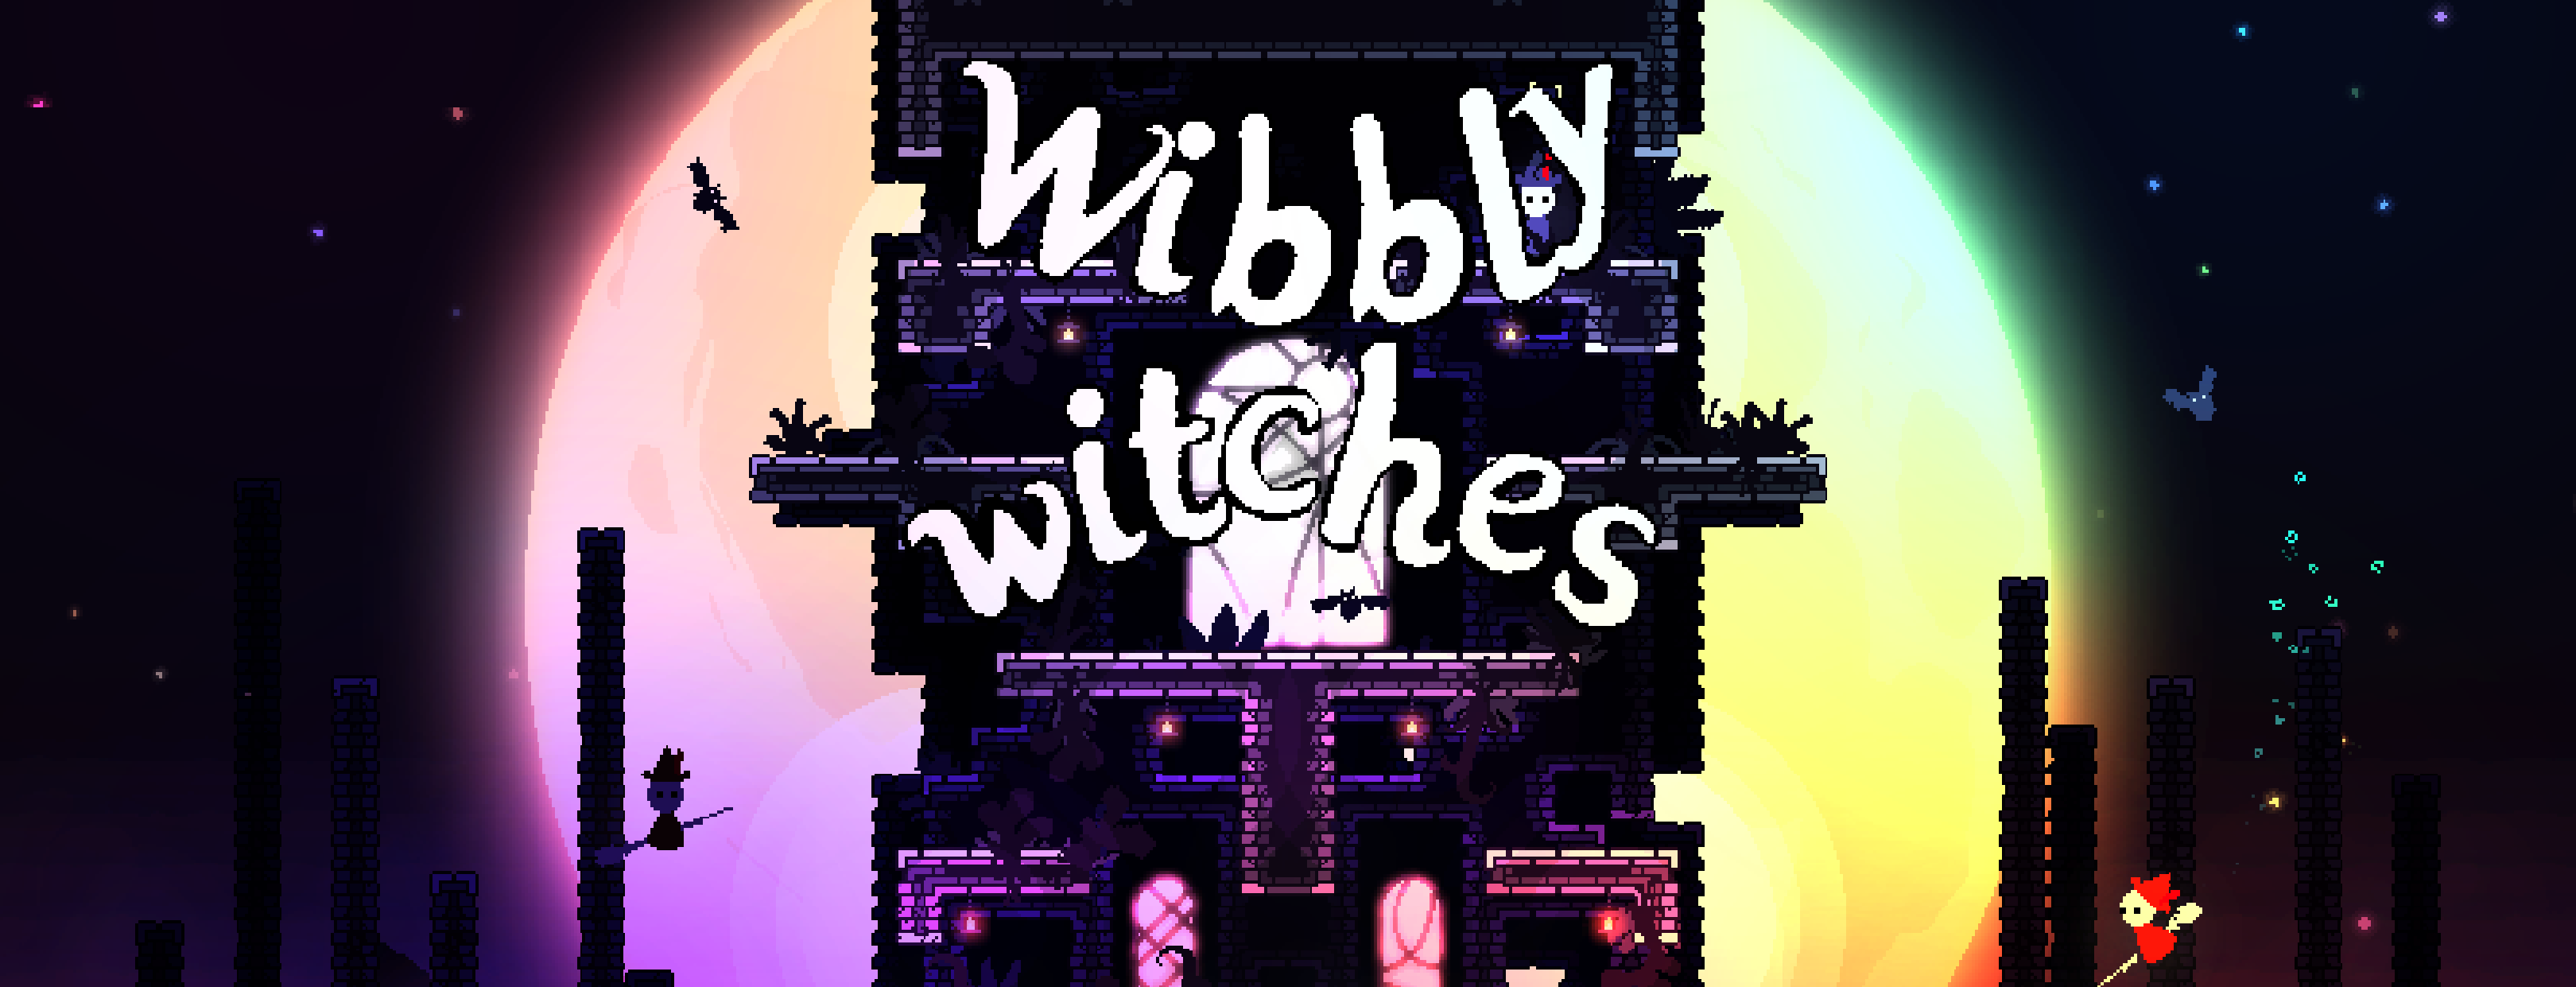 Wibbly Witches (Demo)